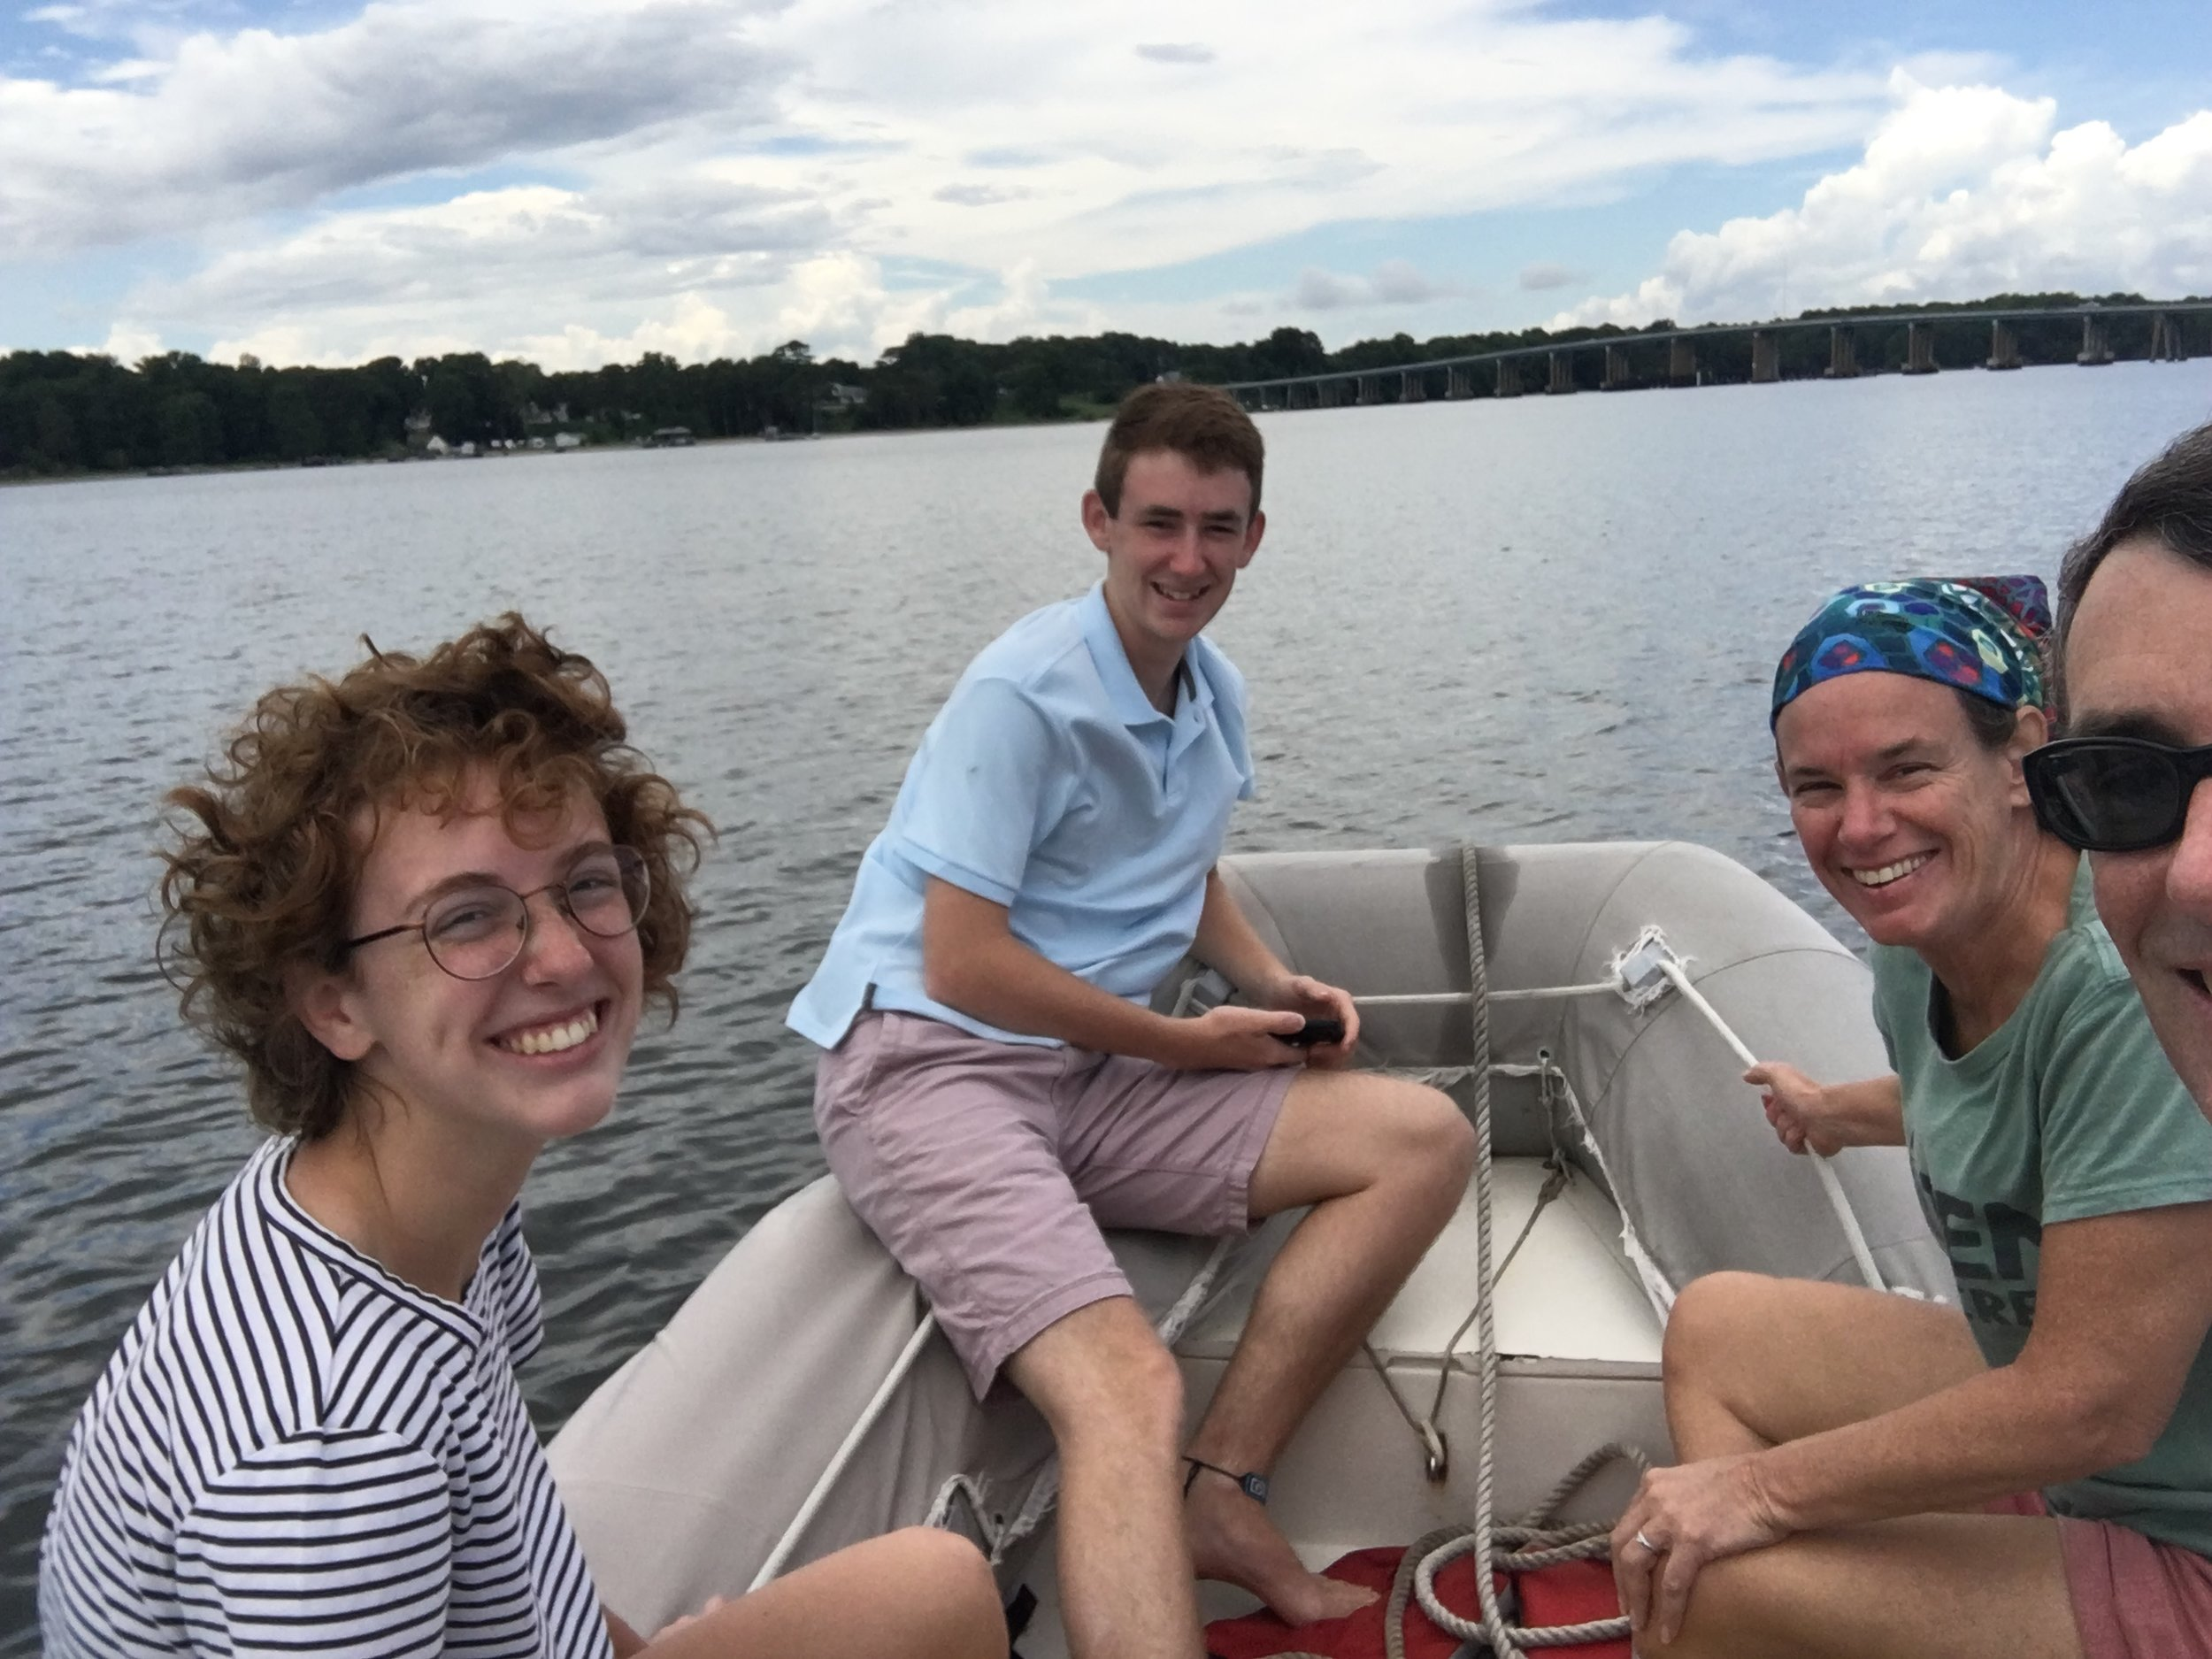 Family dinghy ride. Bliss.